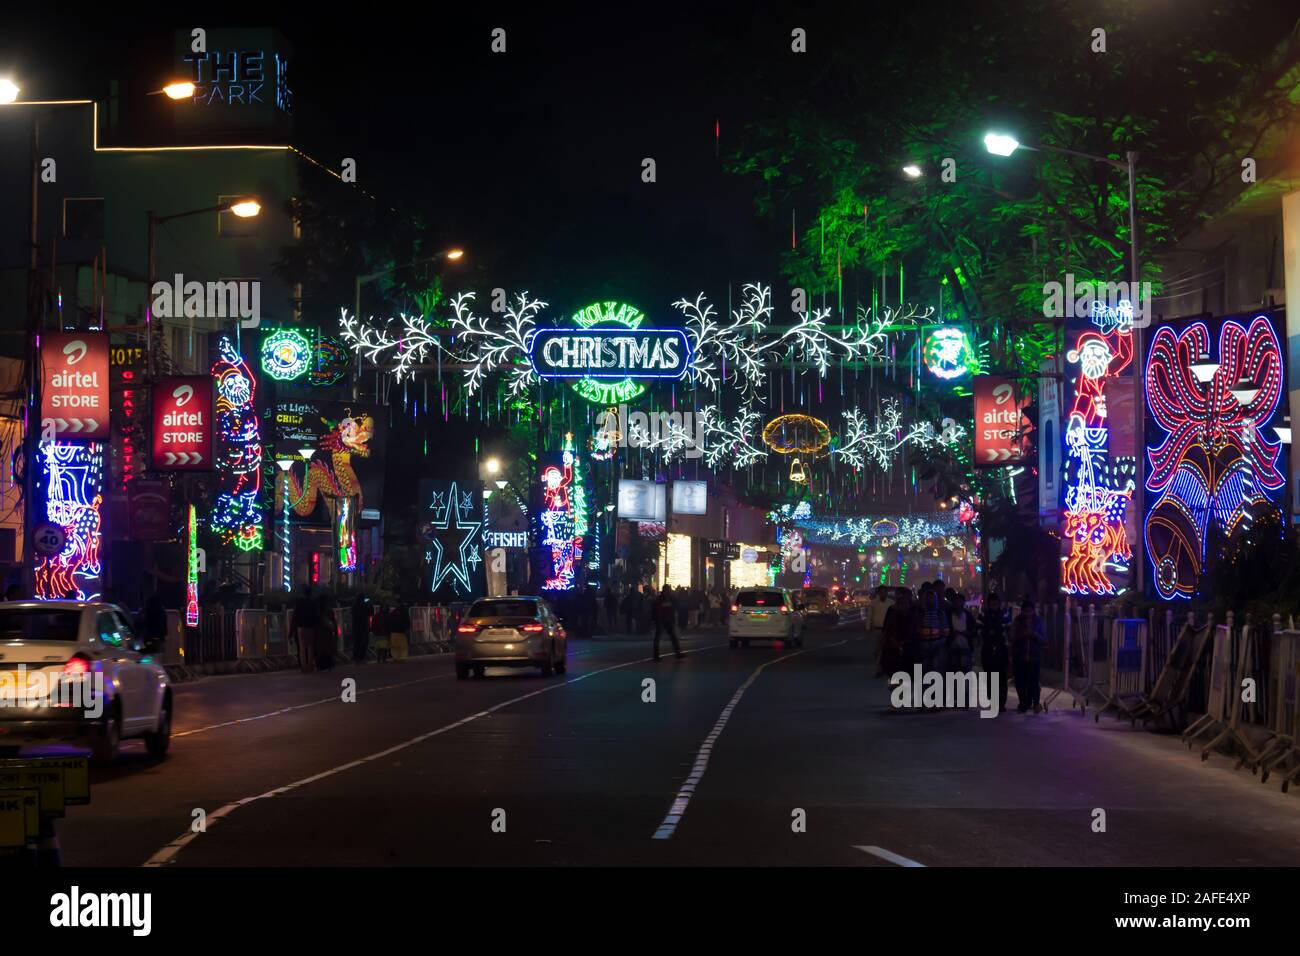 Christmas In The Park 2021 Dates Park Street Kolkata Christmas High Resolution Stock Photography And Images Alamy